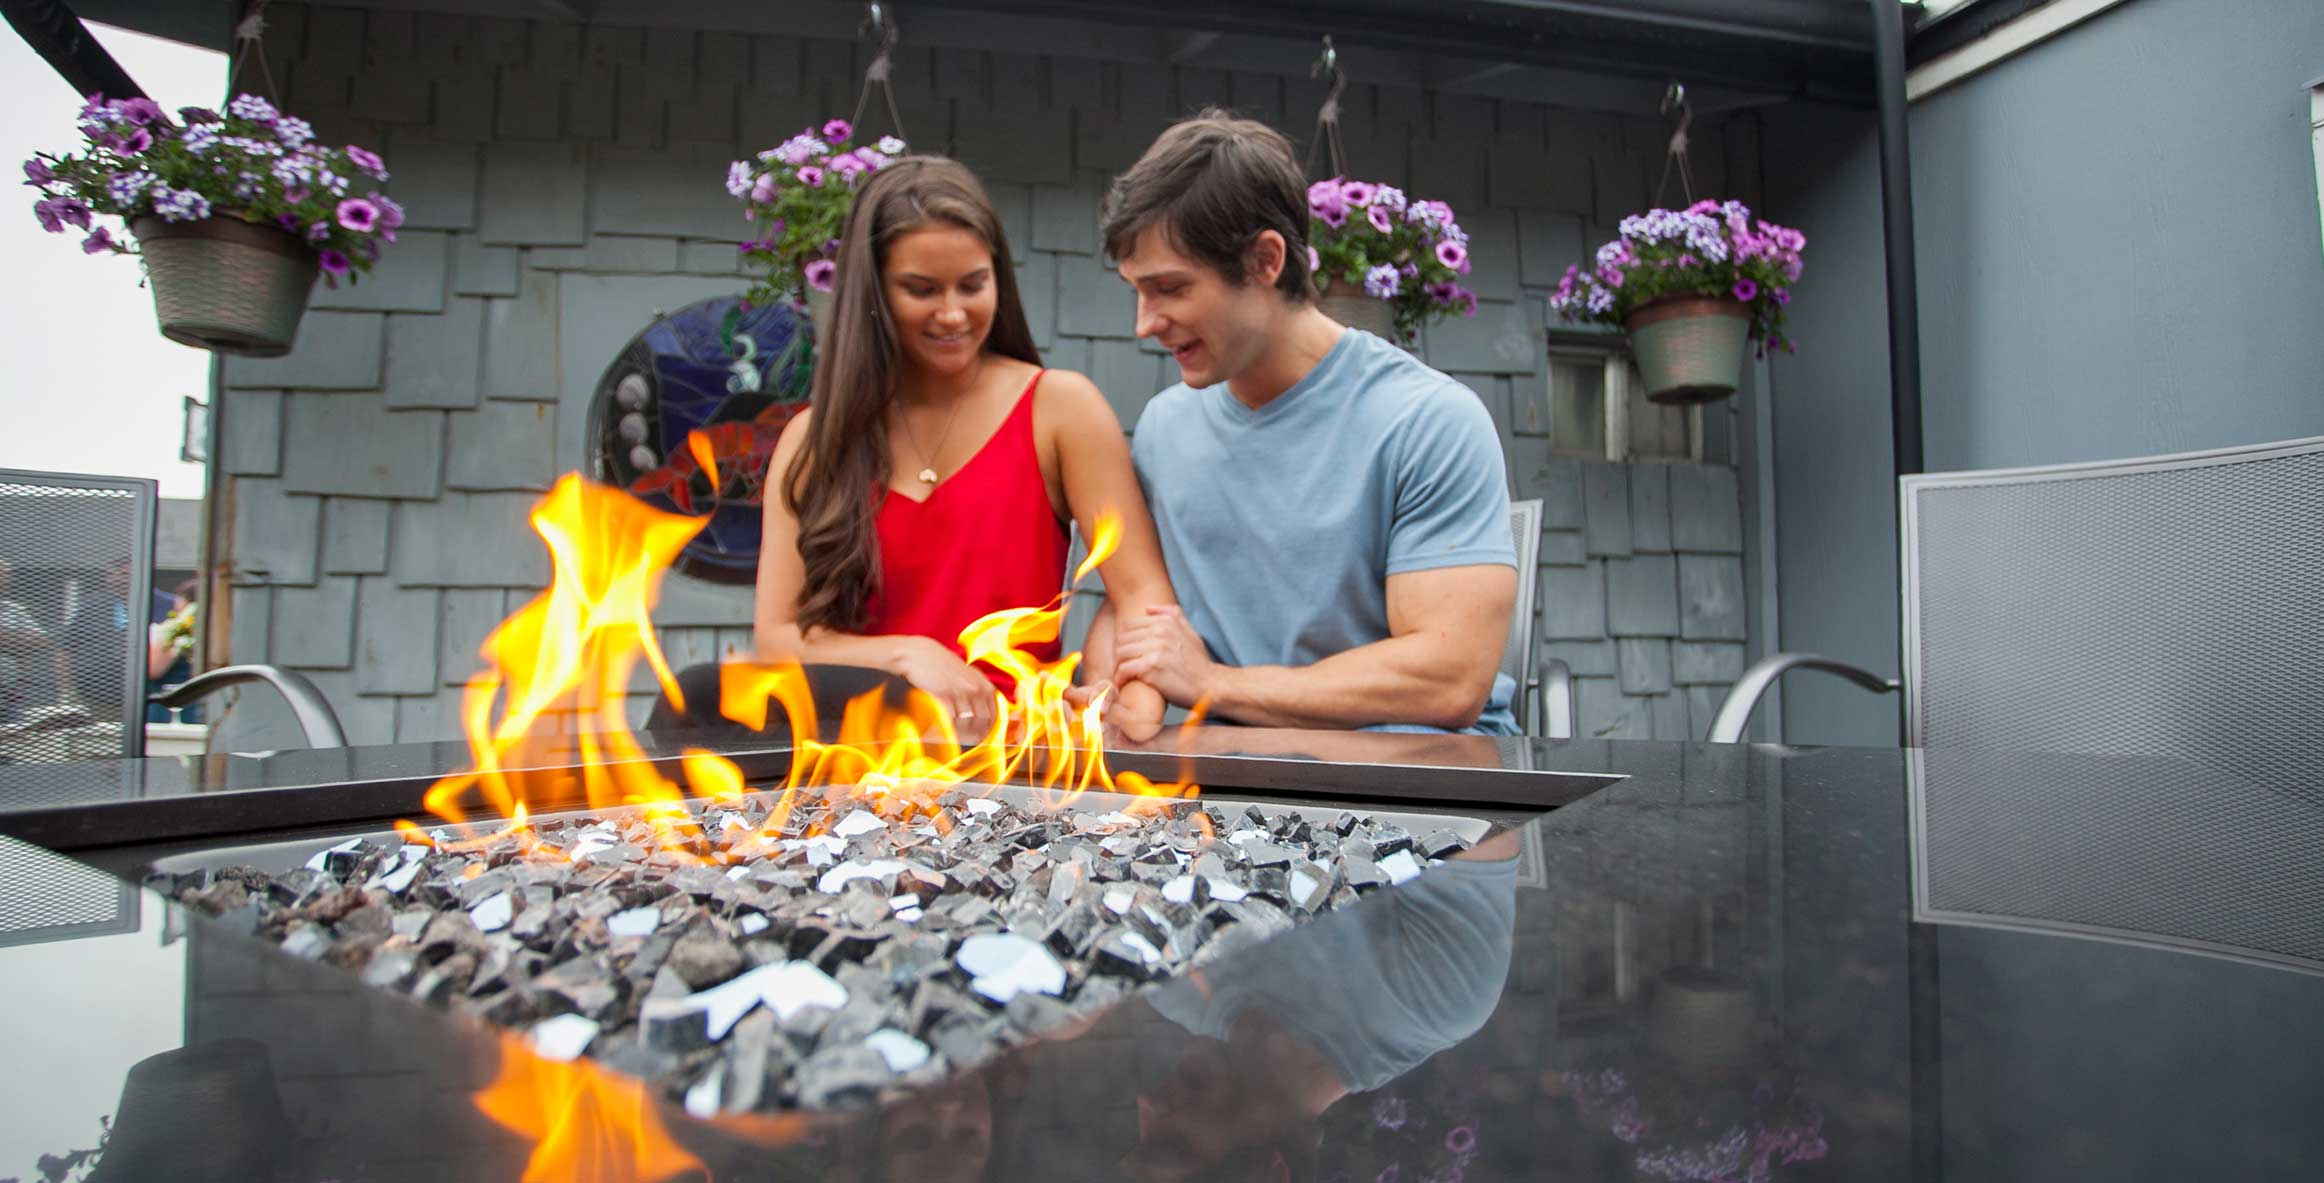 RELAX BY OUR OUTDOOR FIREPIT